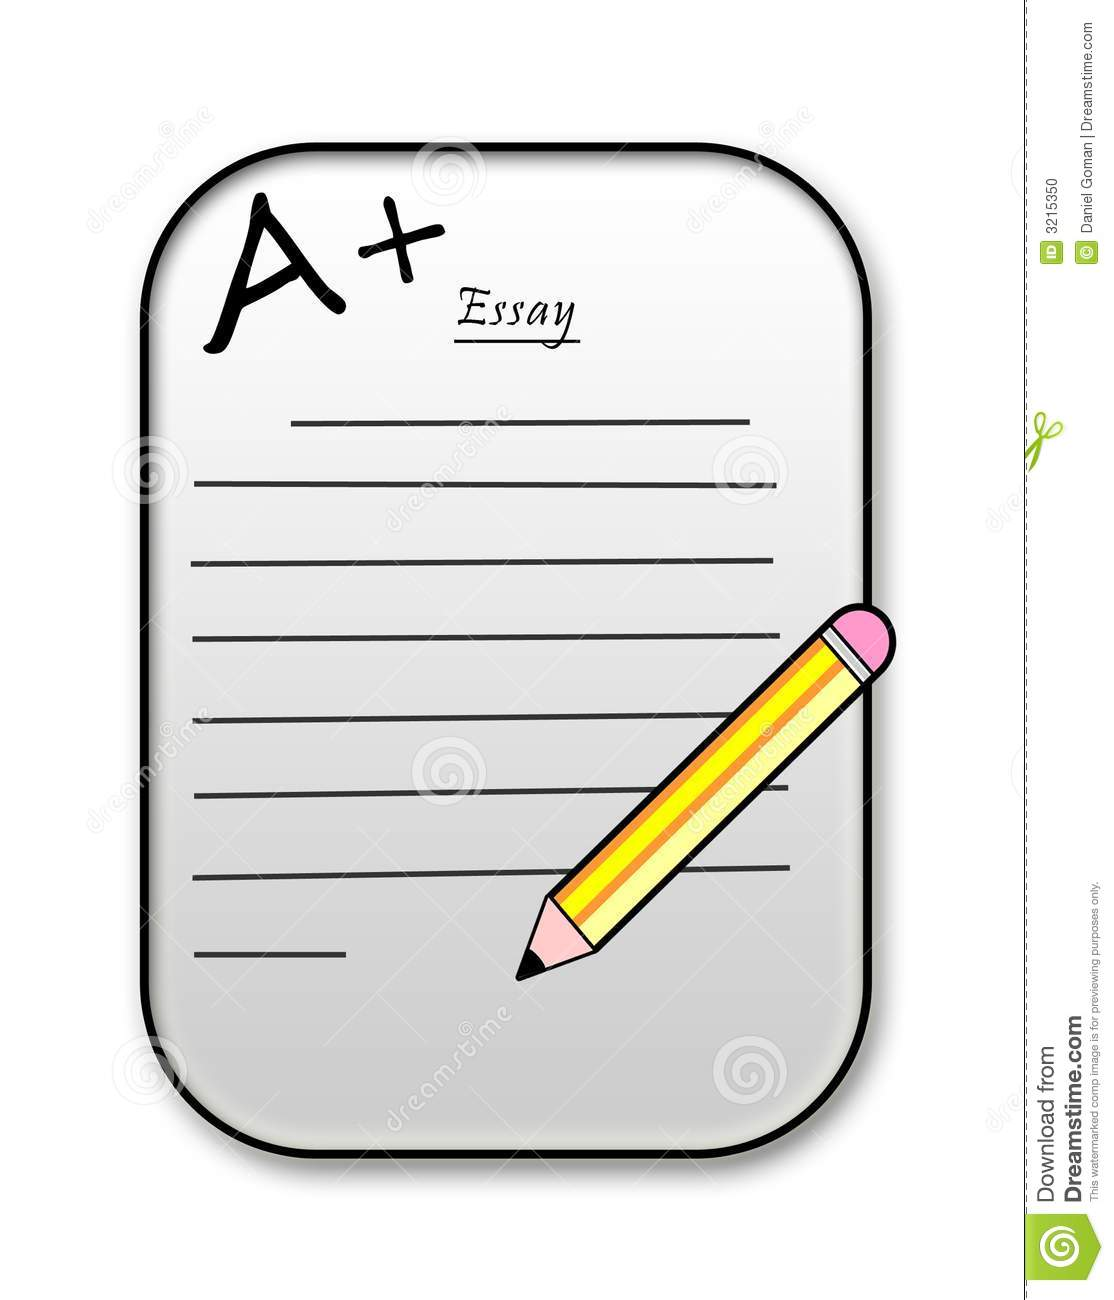 writing paper clipart  free download best writing paper clipart on  x paper clipart essay